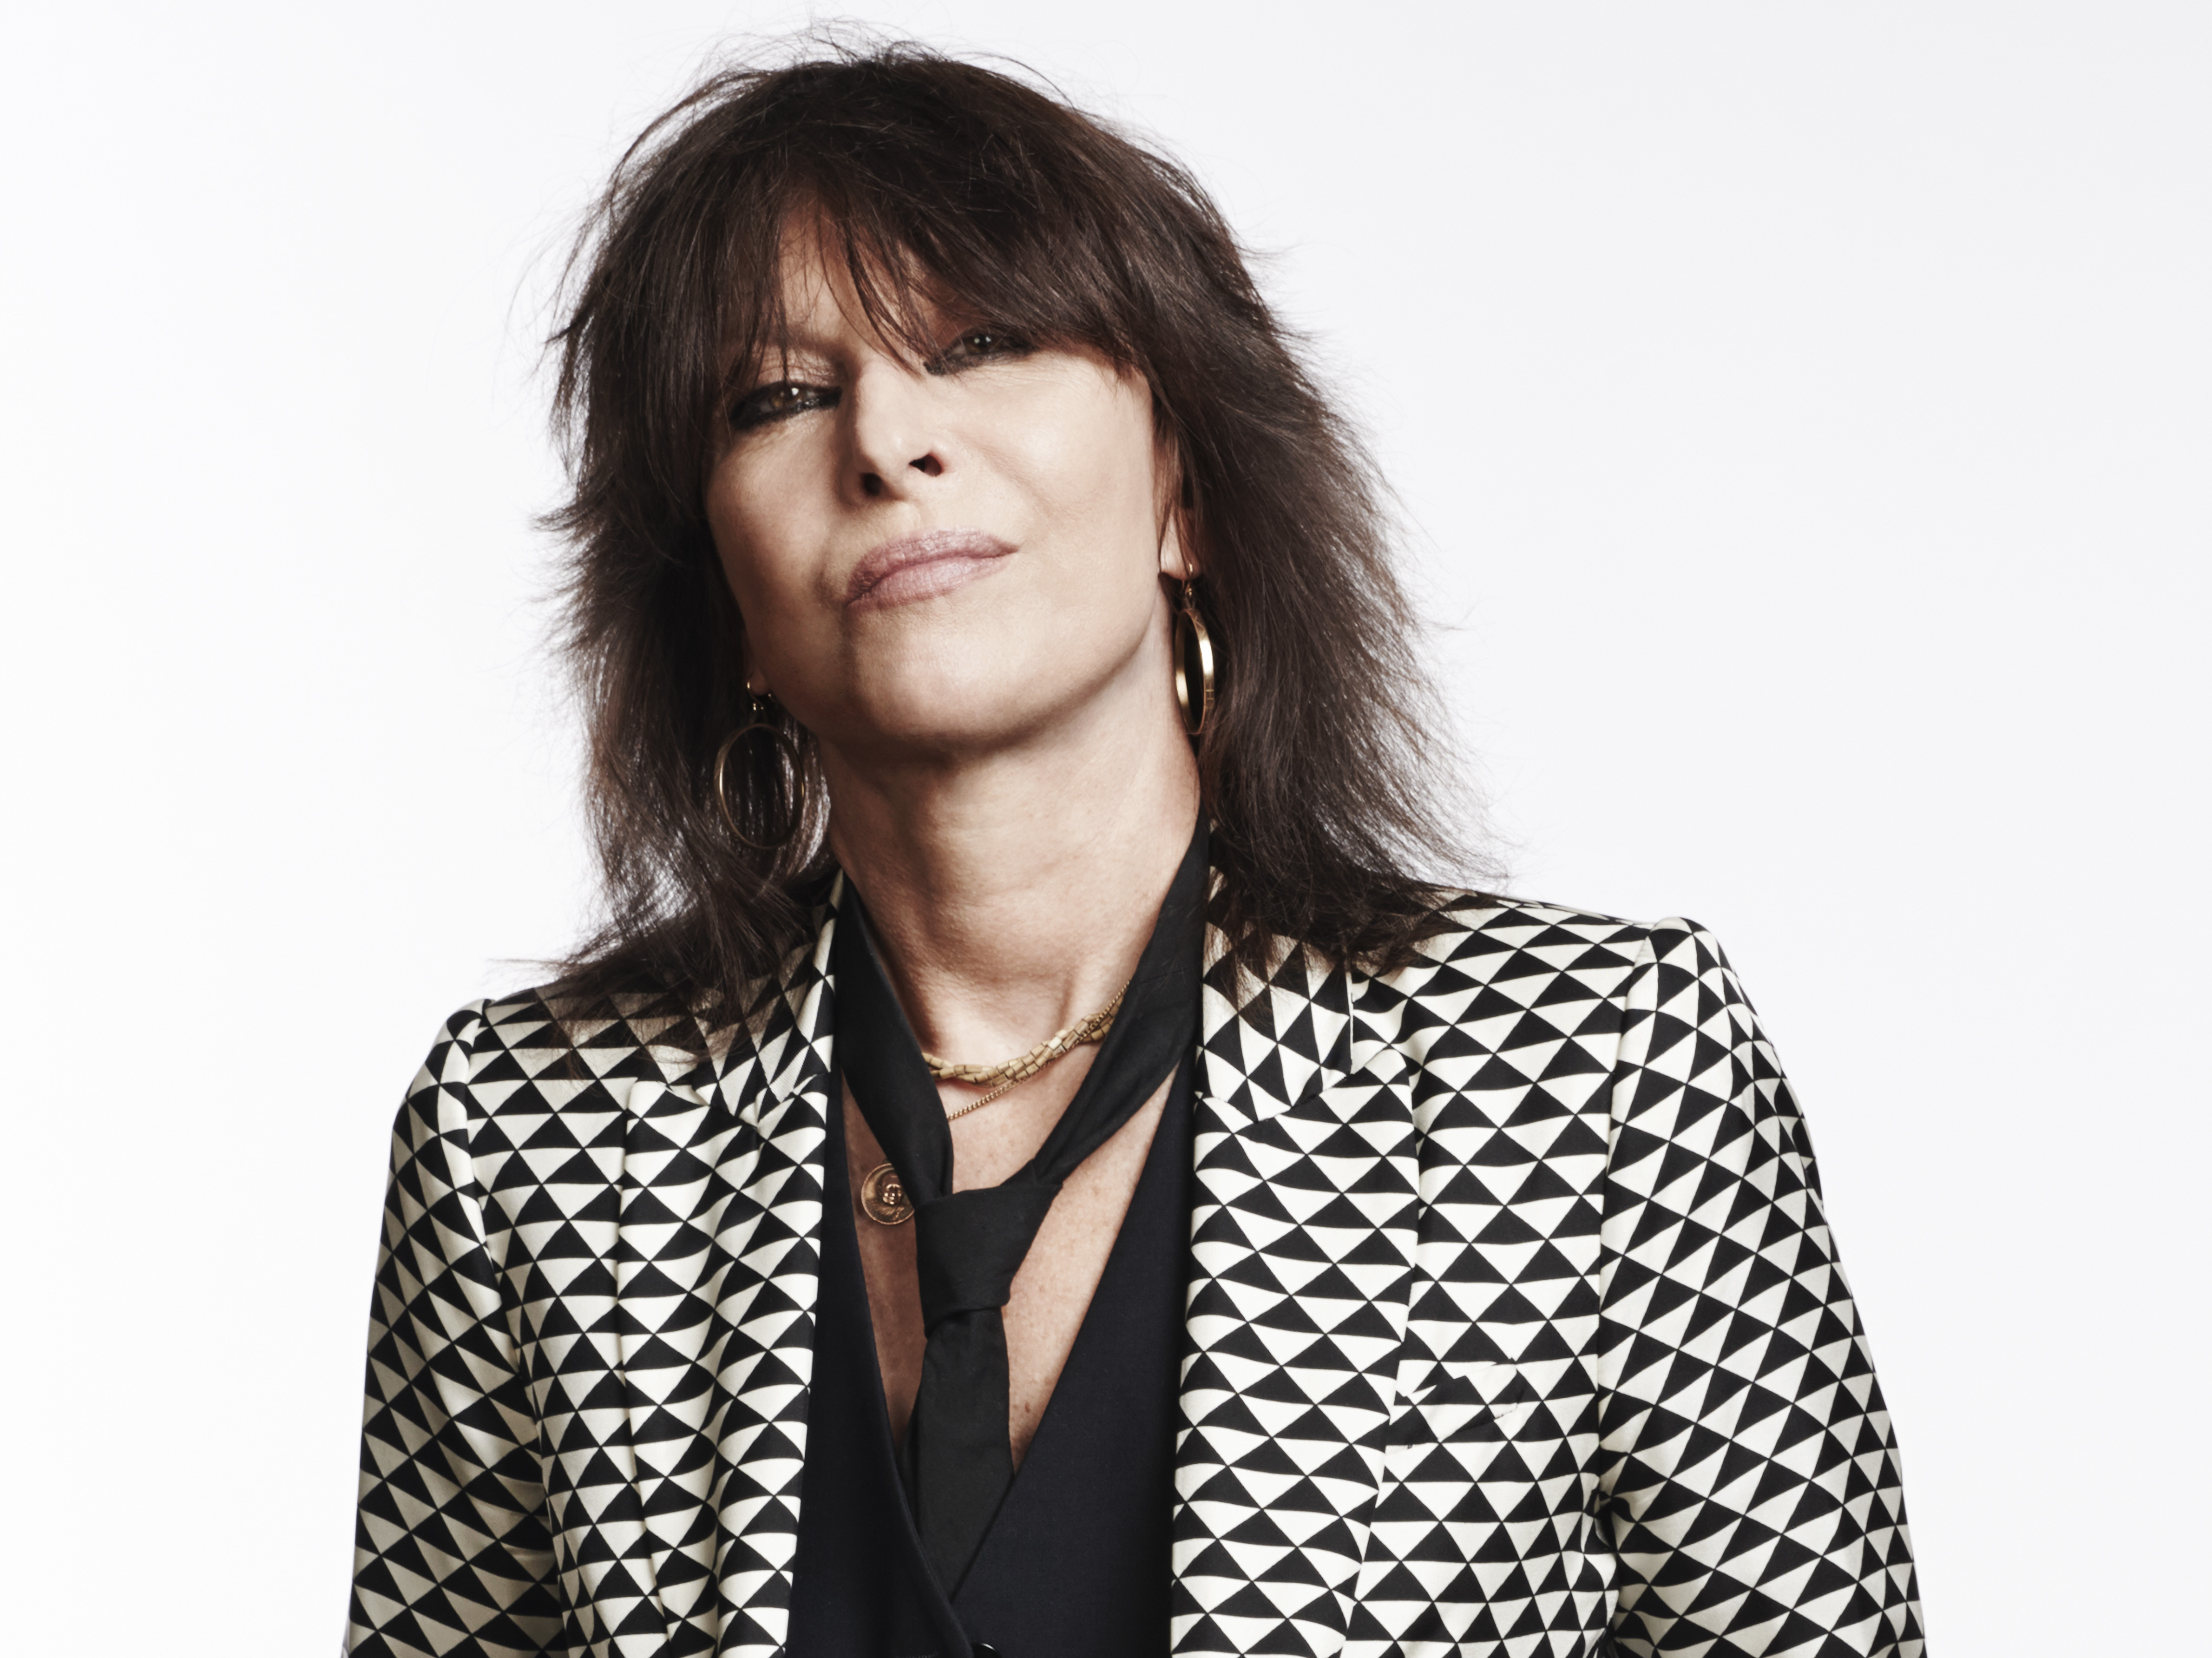 Chrissie Hynde Steps Out, But She's Not Alone